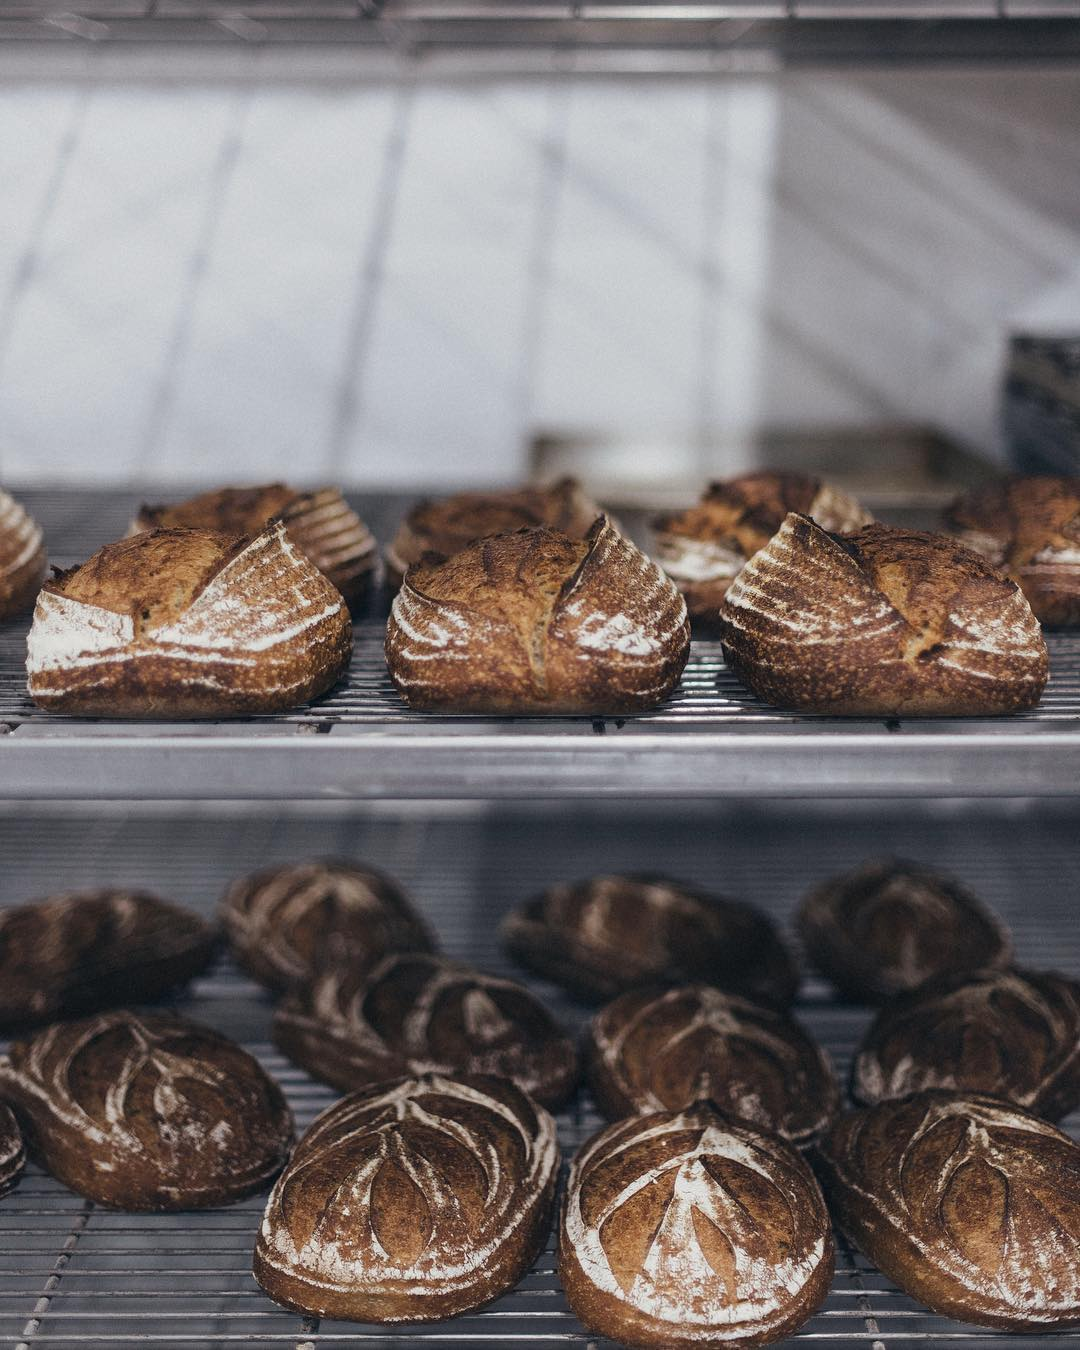 City Pantry - Best Sourdough in London